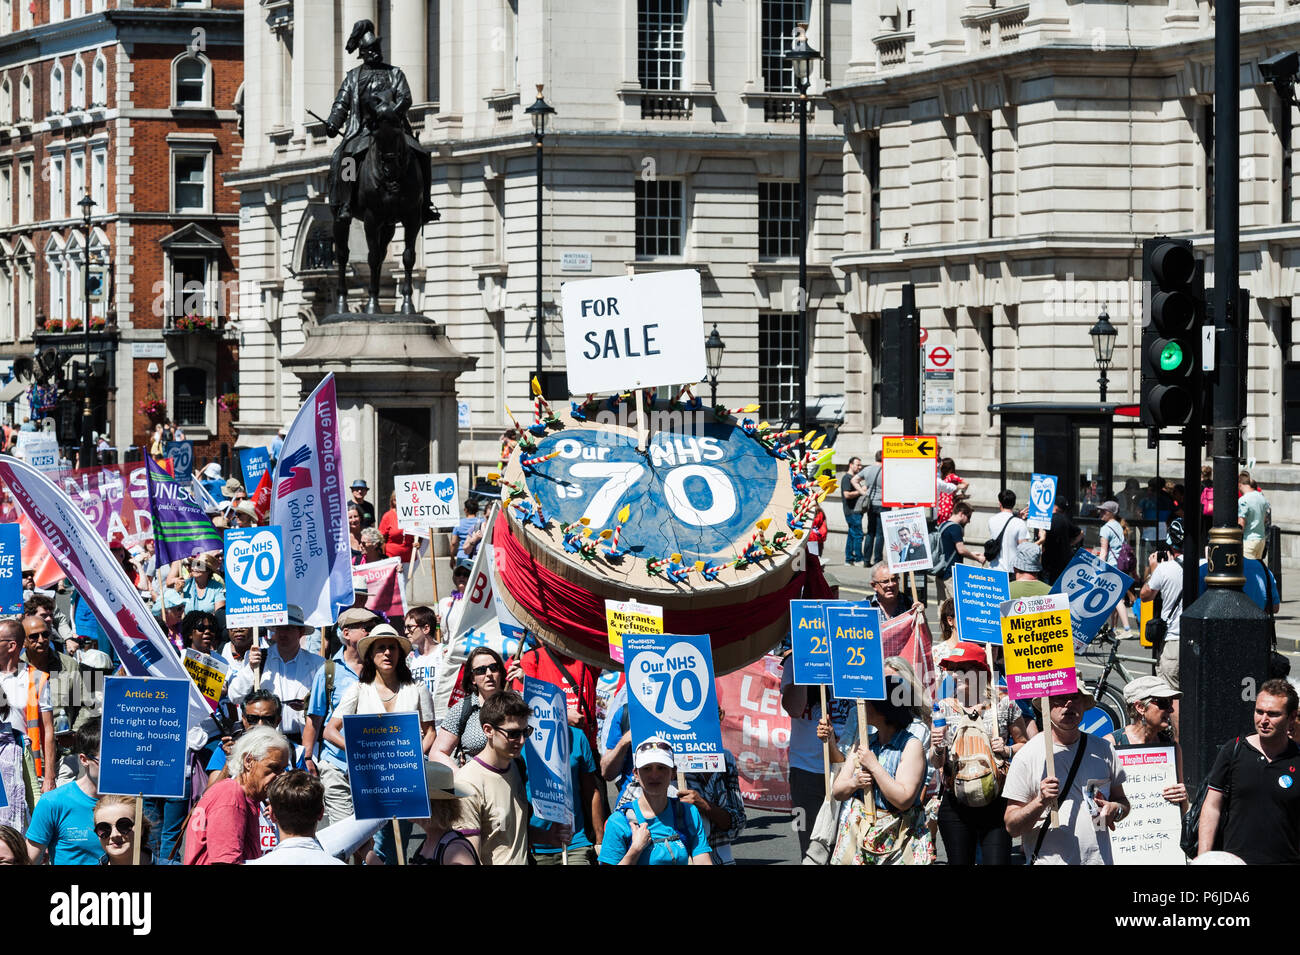 London, UK. 30th June, 2018. Thousands of demonstrators take part in a march followed by a rally outside Downing Street in central London to celebrate the 70th anniversary of the National Health Service. Protesters call for an end to austerity policies which lead to underfunding and staff shortages in the NHS, and demand that it remains publicly owned and accessible to everyone. Credit: Wiktor Szymanowicz/Alamy Live News - Stock Image